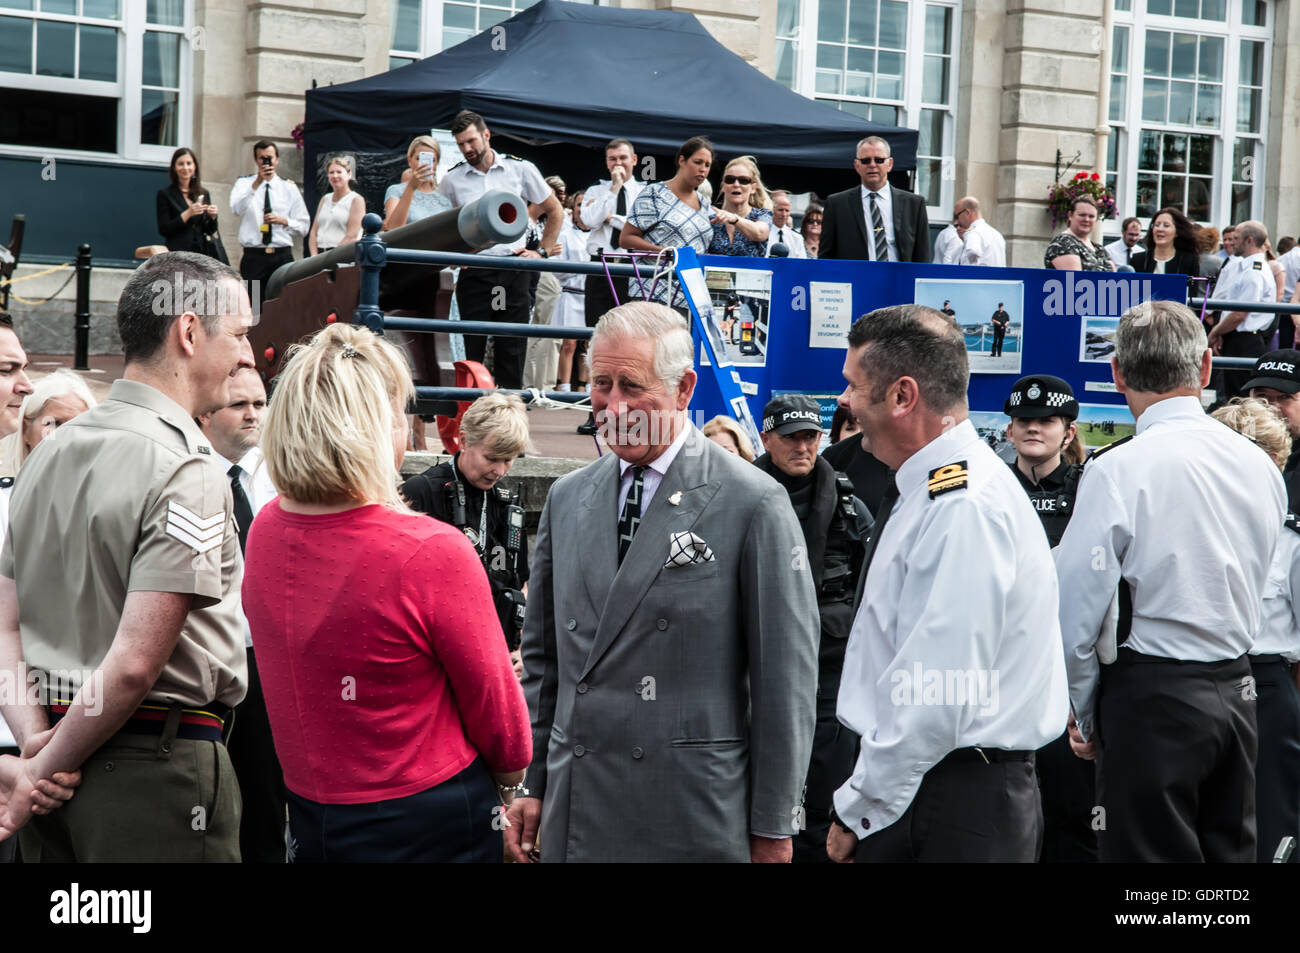 Her Majesty's Naval Base Devonport, Plymouth, Devon, U.K. 20th July 2016. HRH Prince of Wales meets members - Stock Image